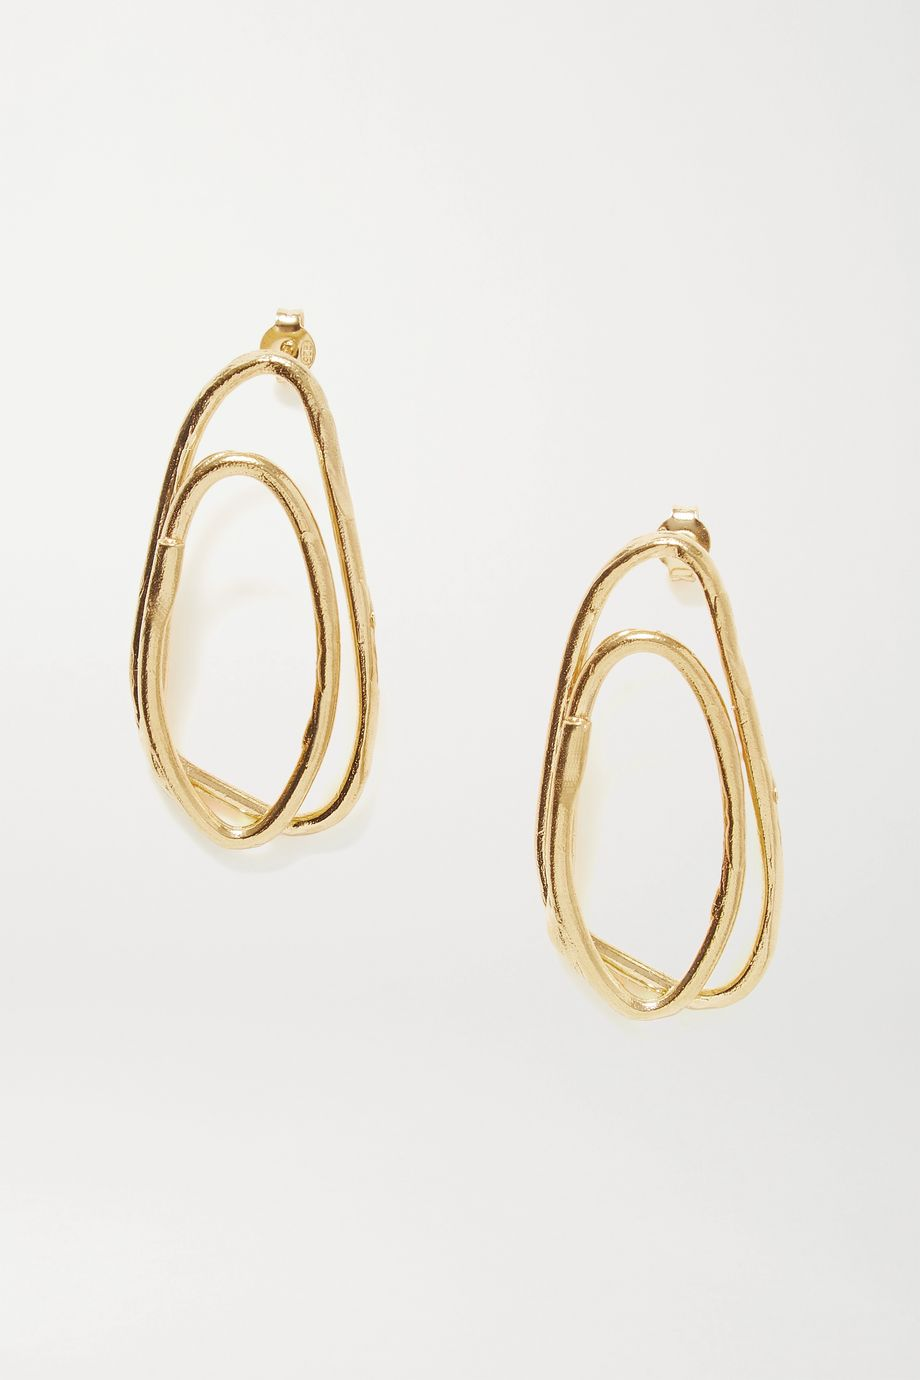 Alighieri The Rhymes of Love gold-plated earrings